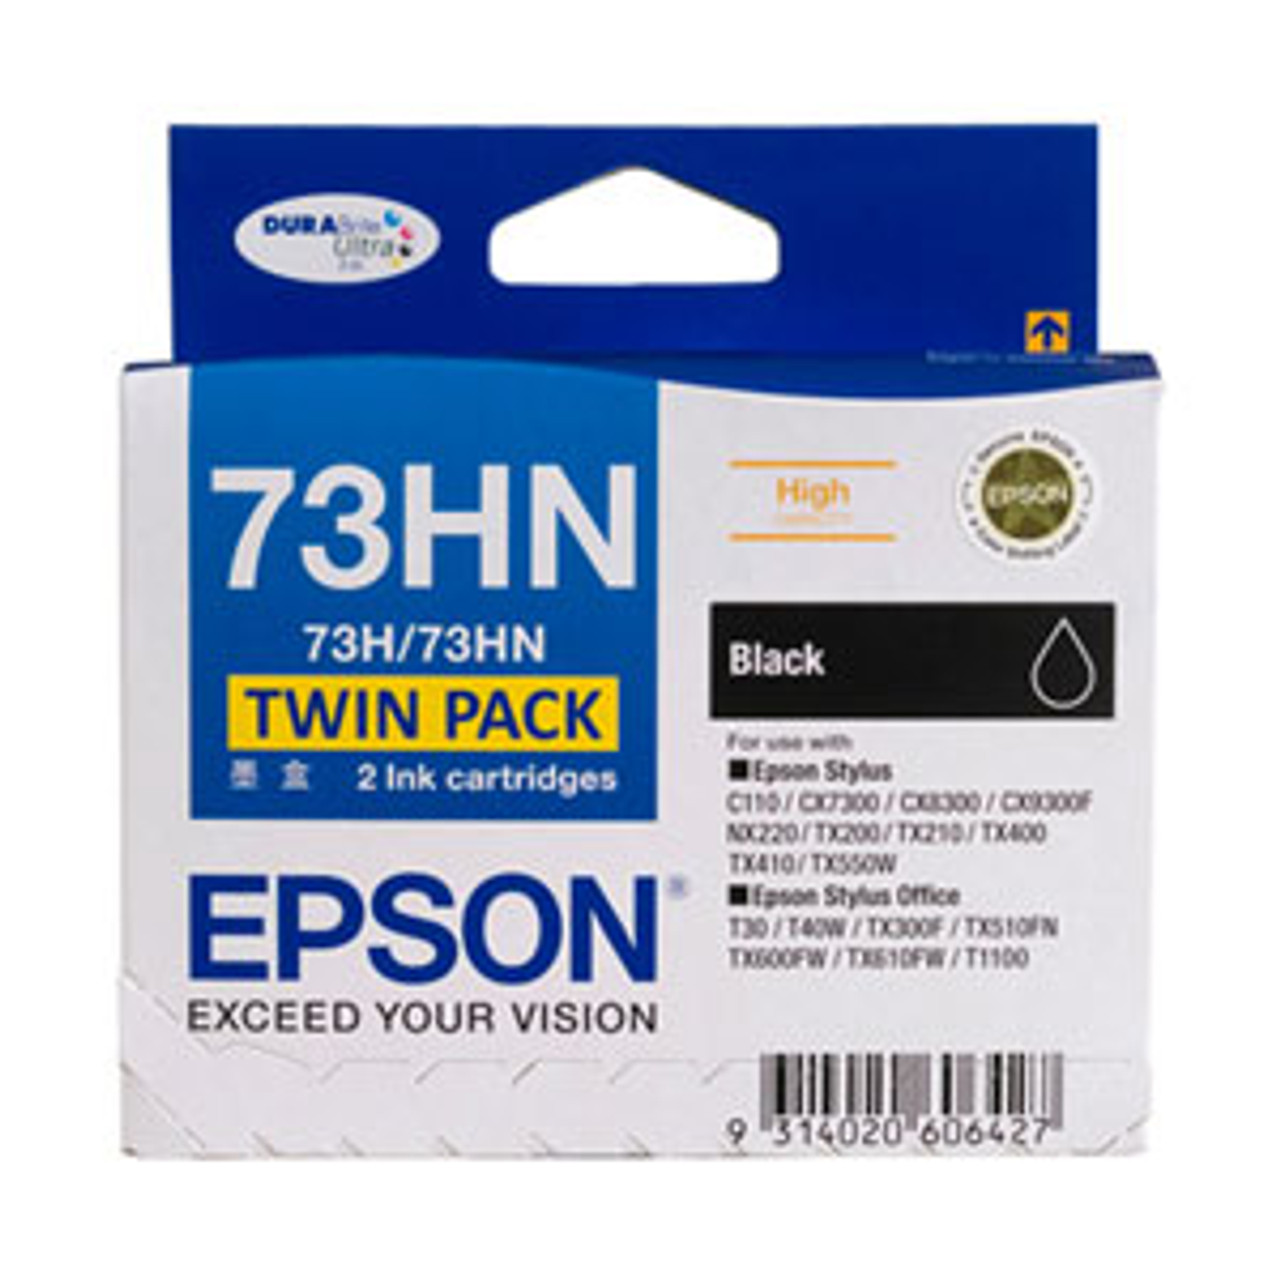 Image for Epson 73HN - High Capacity DURABrite Ultra - Black Ink Cartridge Twin Pack CX Computer Superstore